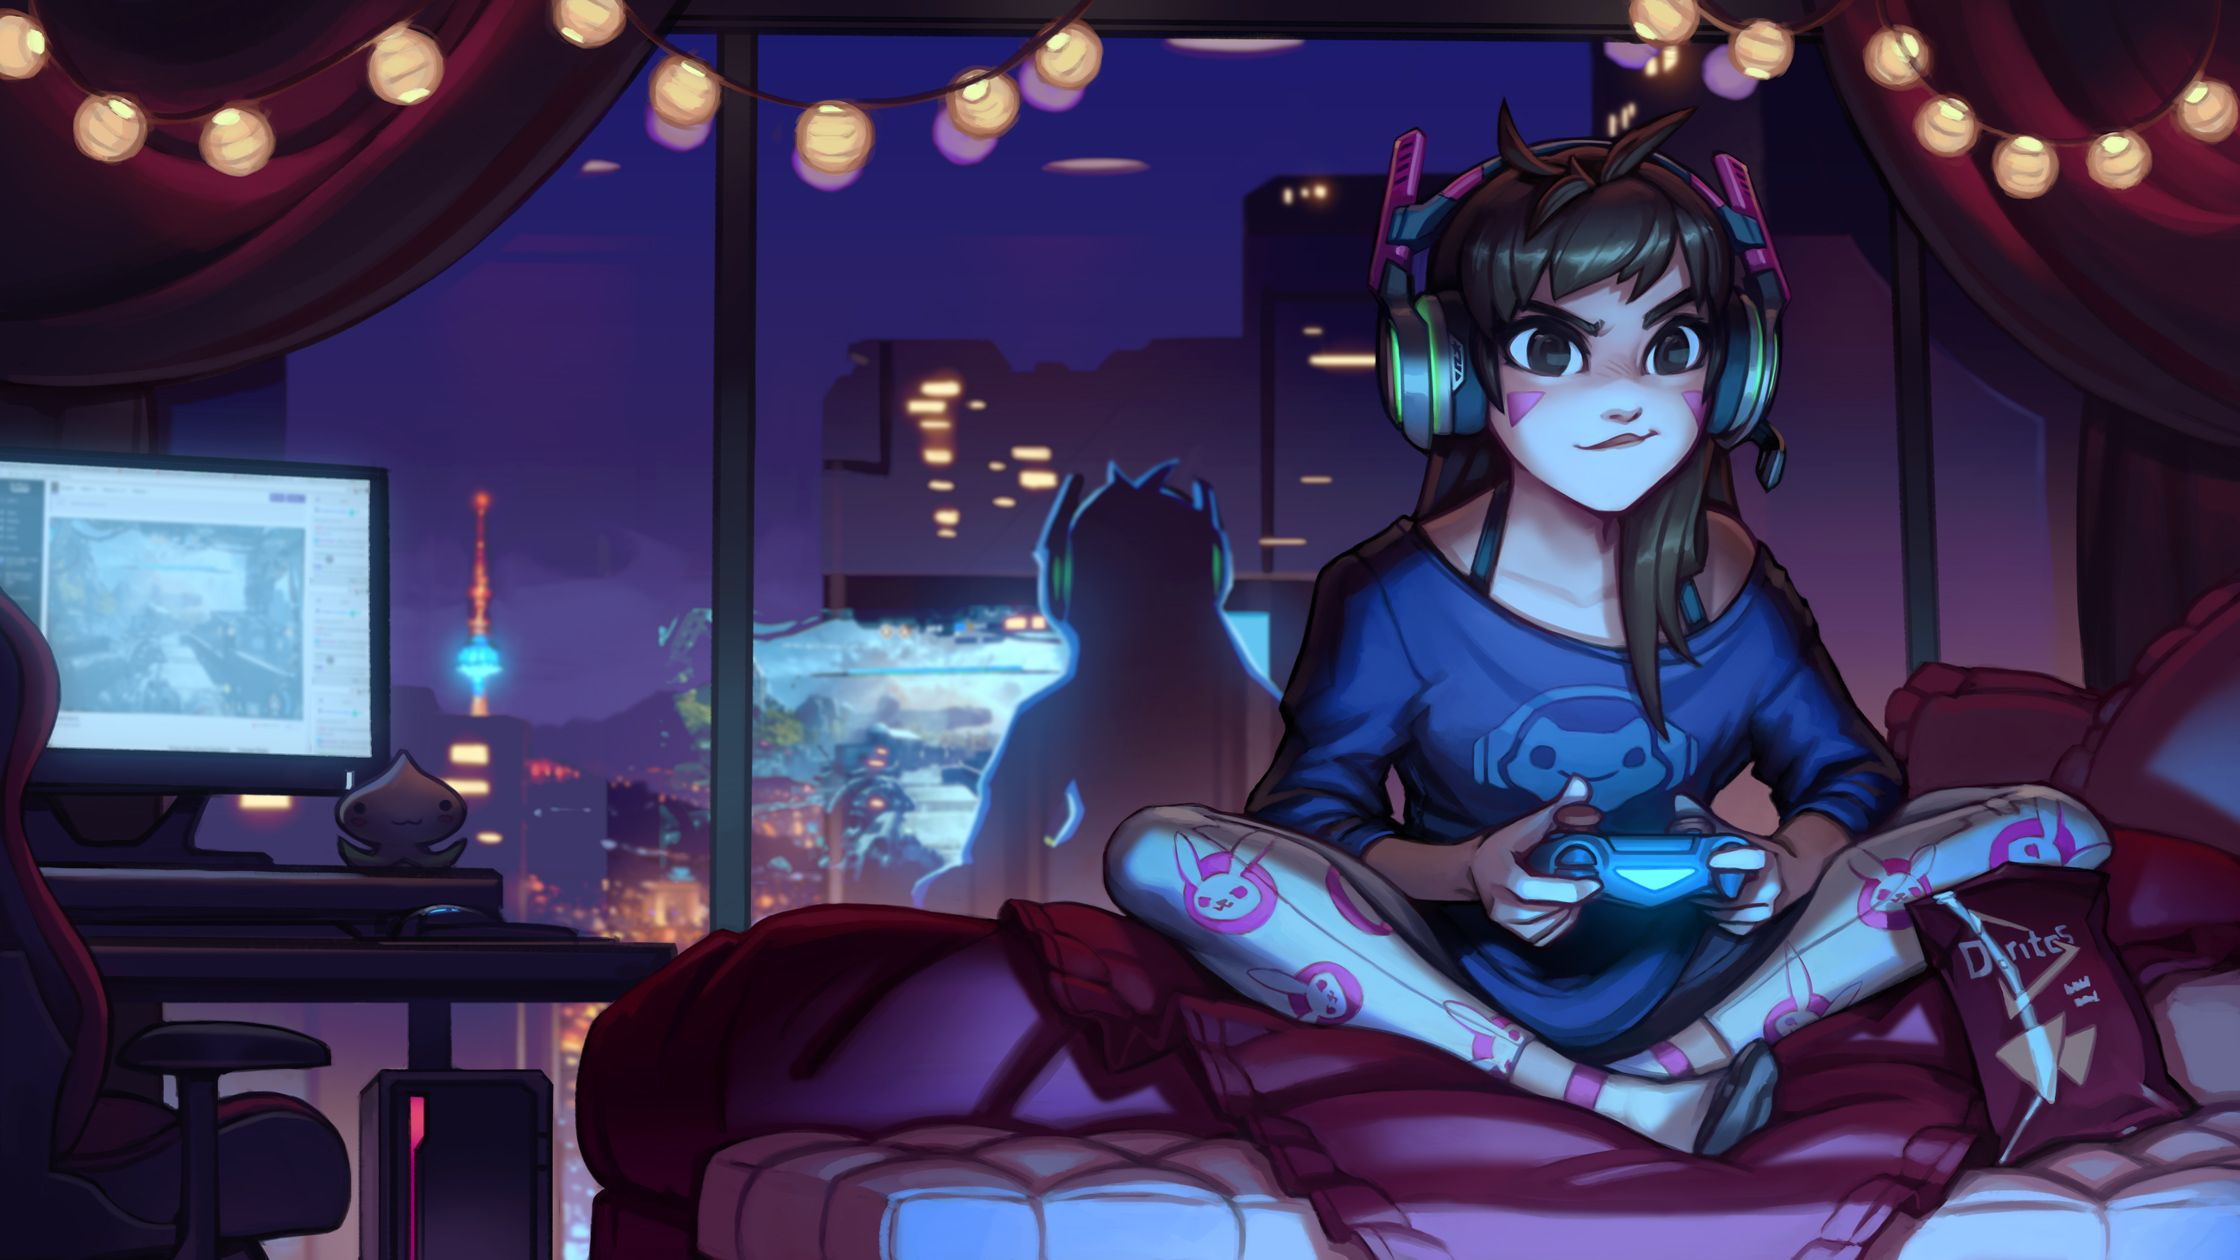 gamer girl art  Casual D.va - Youtube Process! by KNKL on